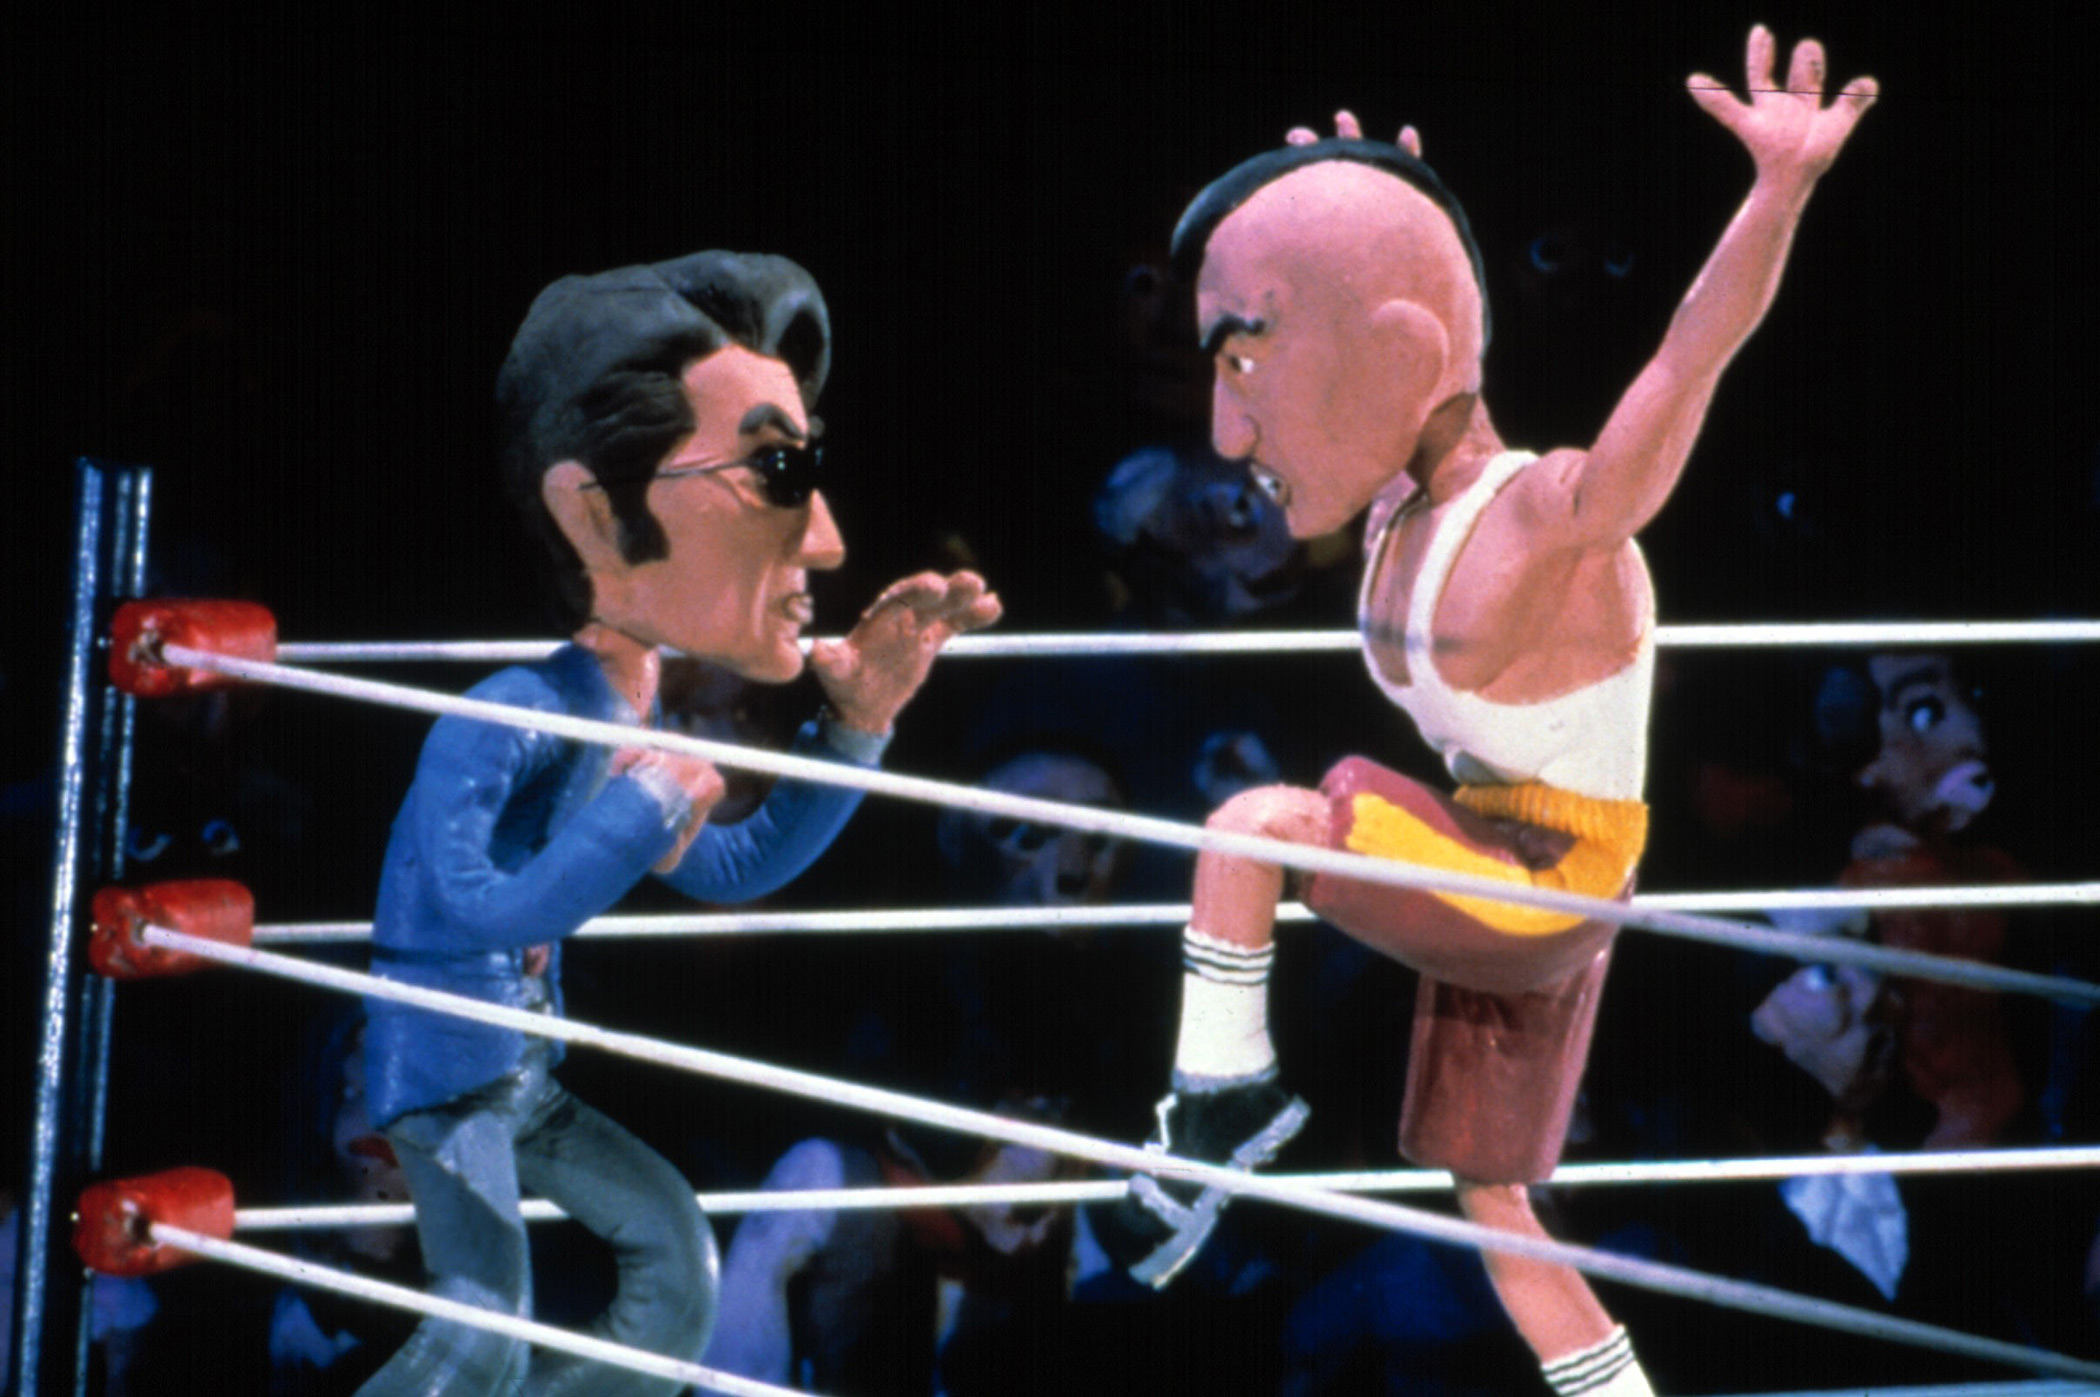 Al Pacino vs. Robert De Niro on Celebrity Deathmatch